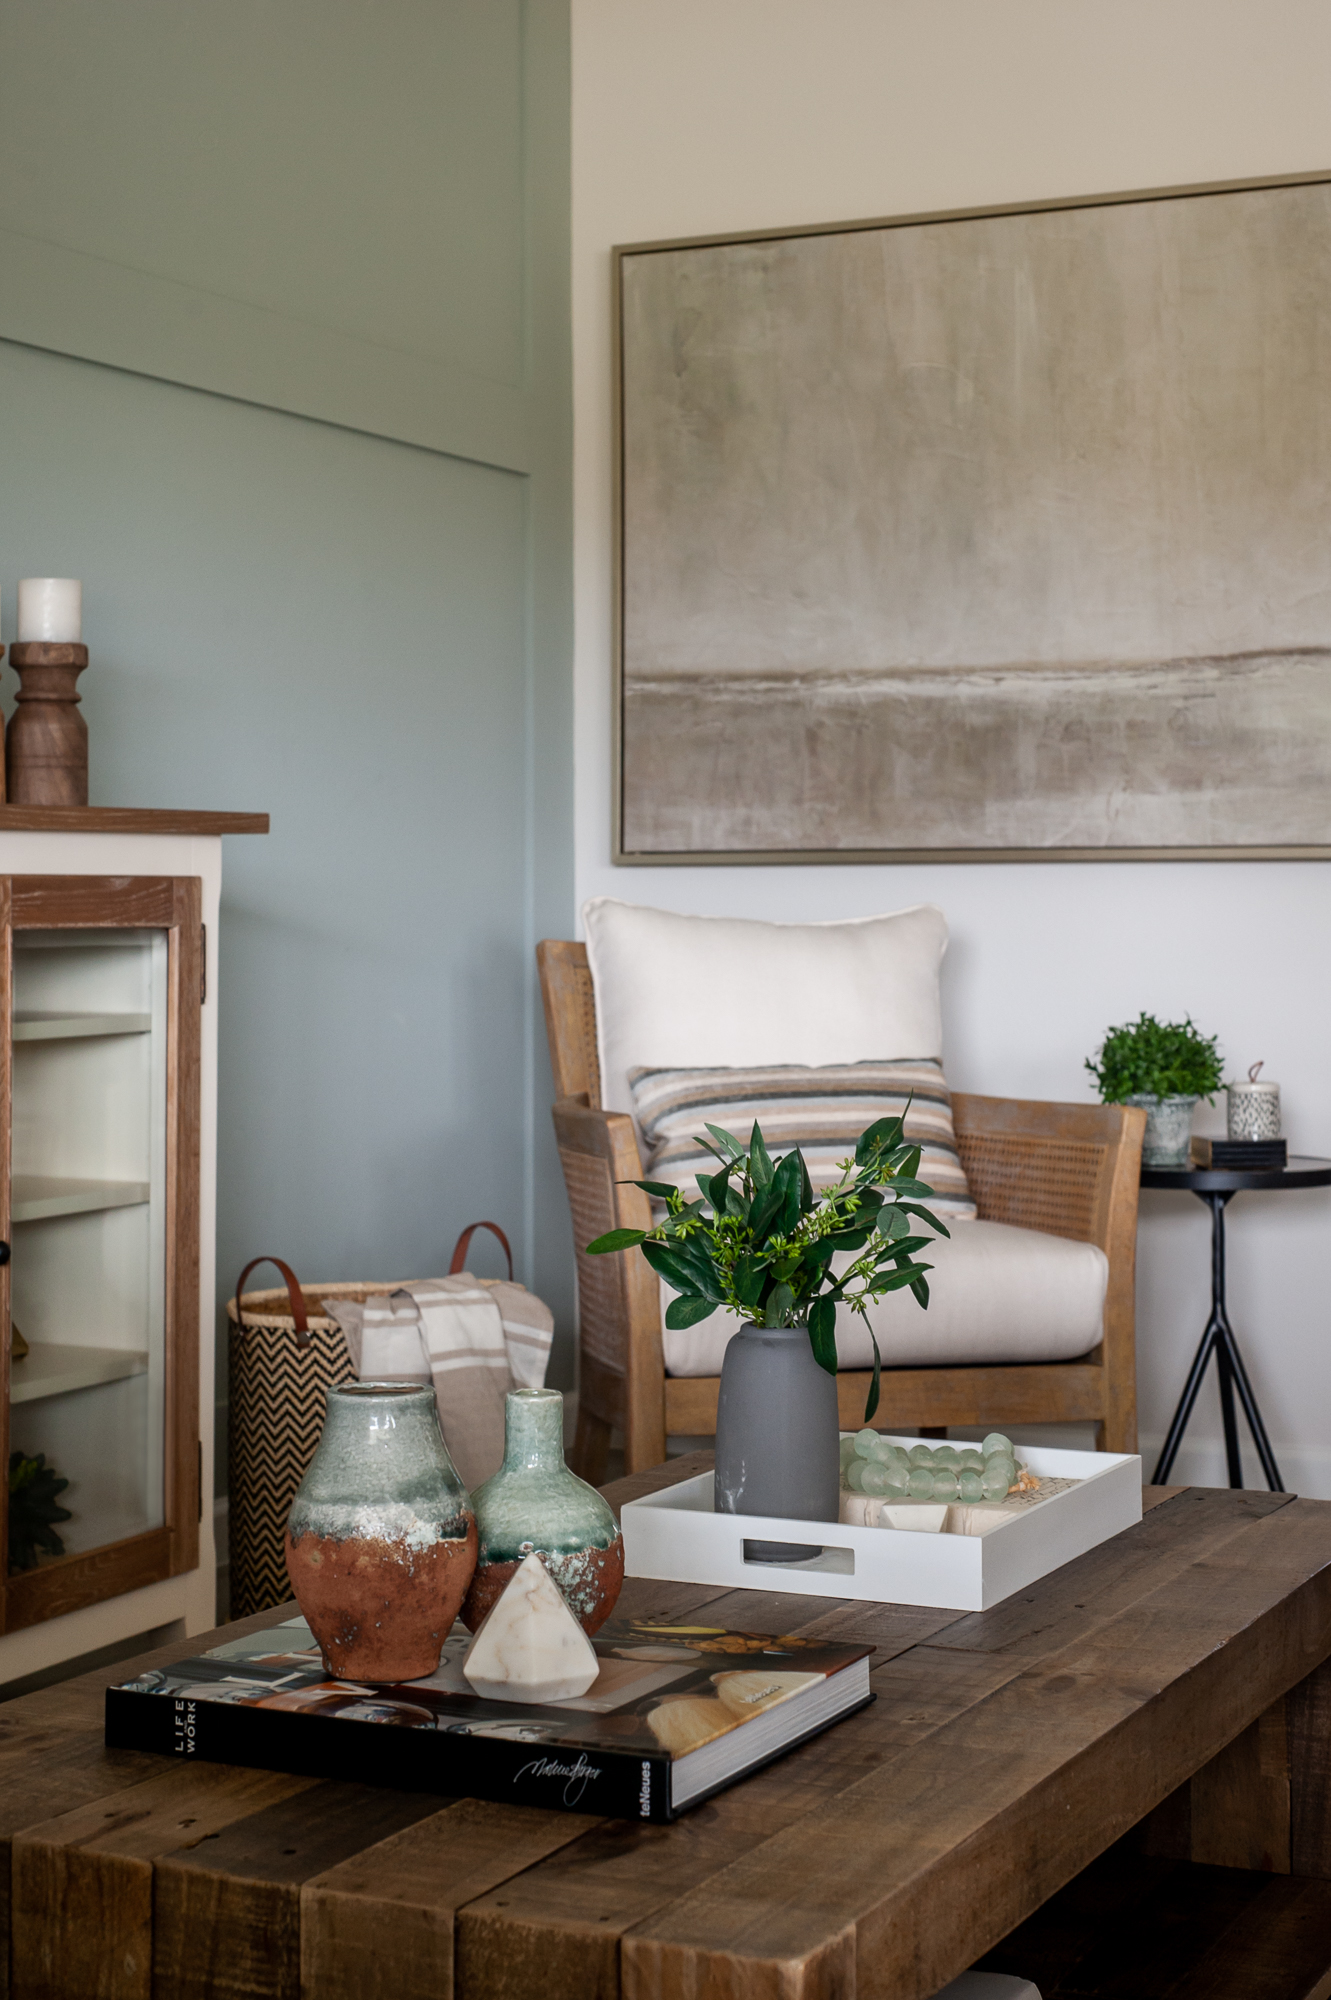 Micamy Design Studio_Model Home_Interior Design_Orchard Cove_Modern Coastal_Universal_McGee & Co_Living Room_Wendover_Uttermost_Coffee Table.jpg